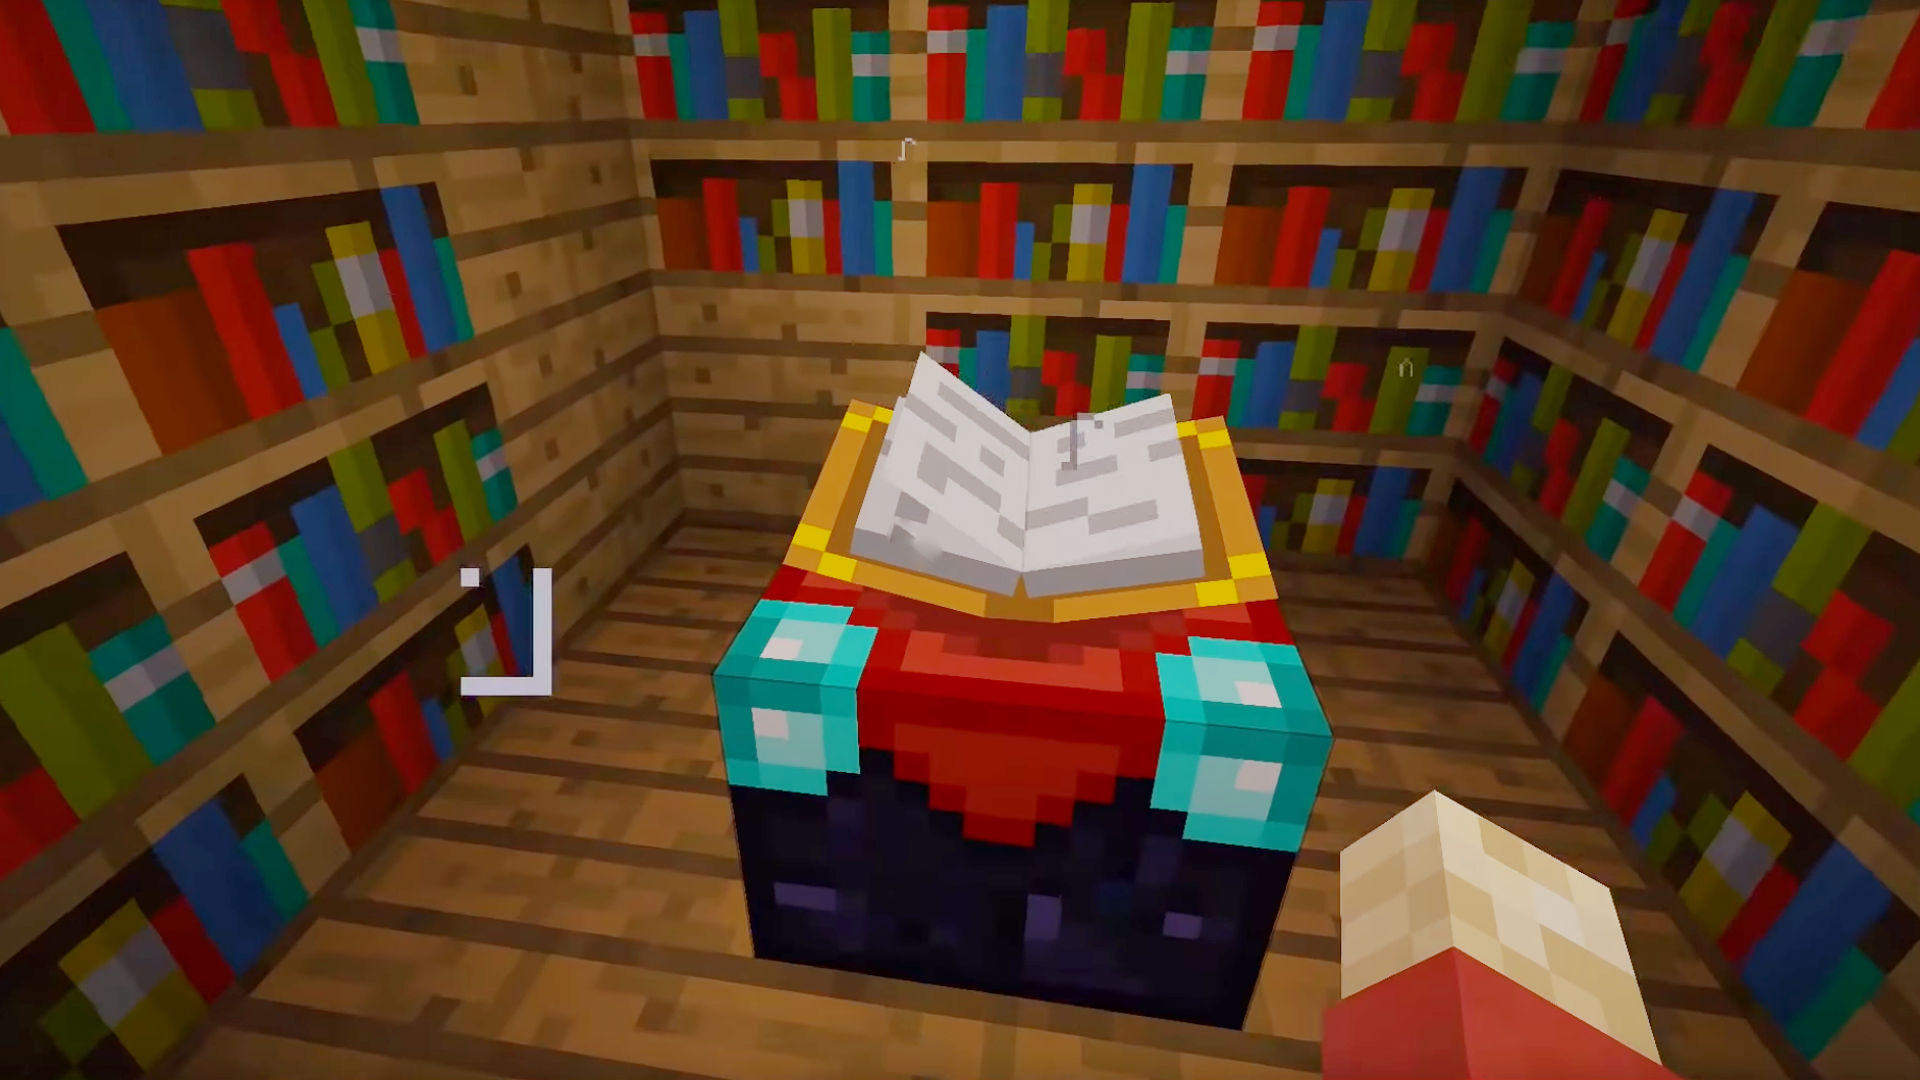 Minecraft Enchantments Guide How To Use Your Enchanting Table Pcgamesn 6 likes · 2 talking about this. minecraft enchantments guide how to